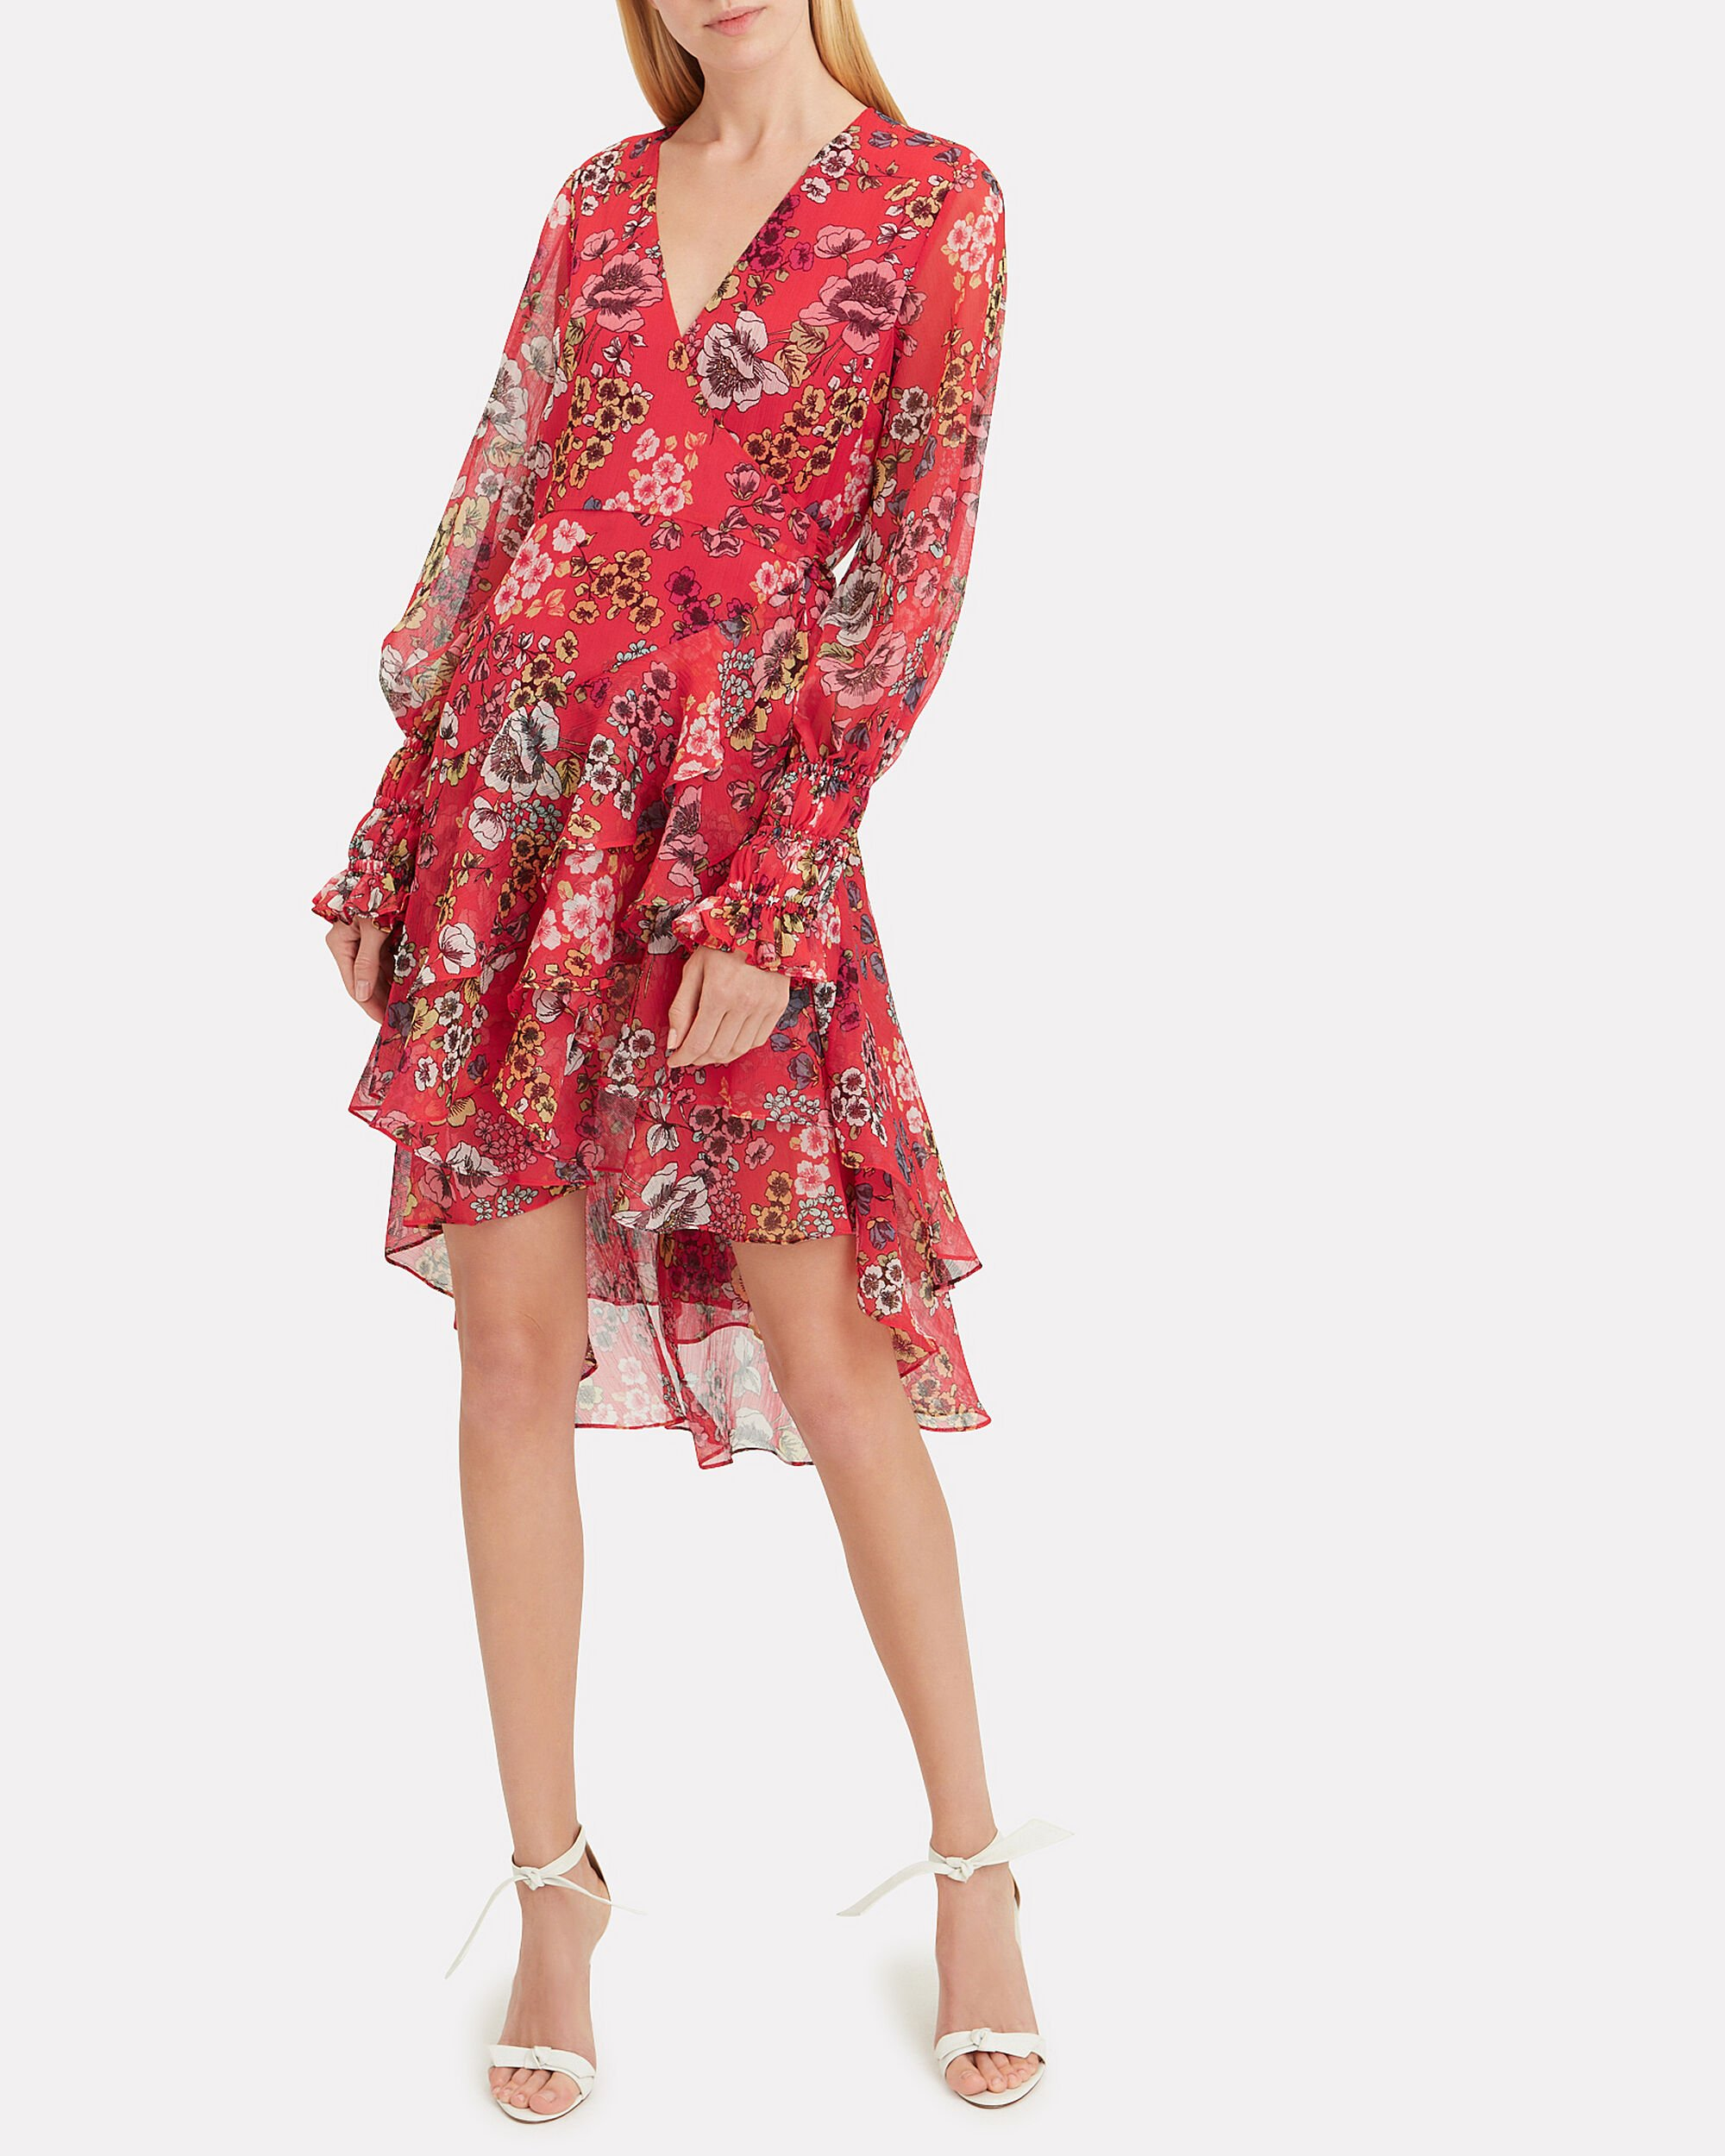 Sidony Red Floral Wrap Dress, RED FLORAL, hi-res